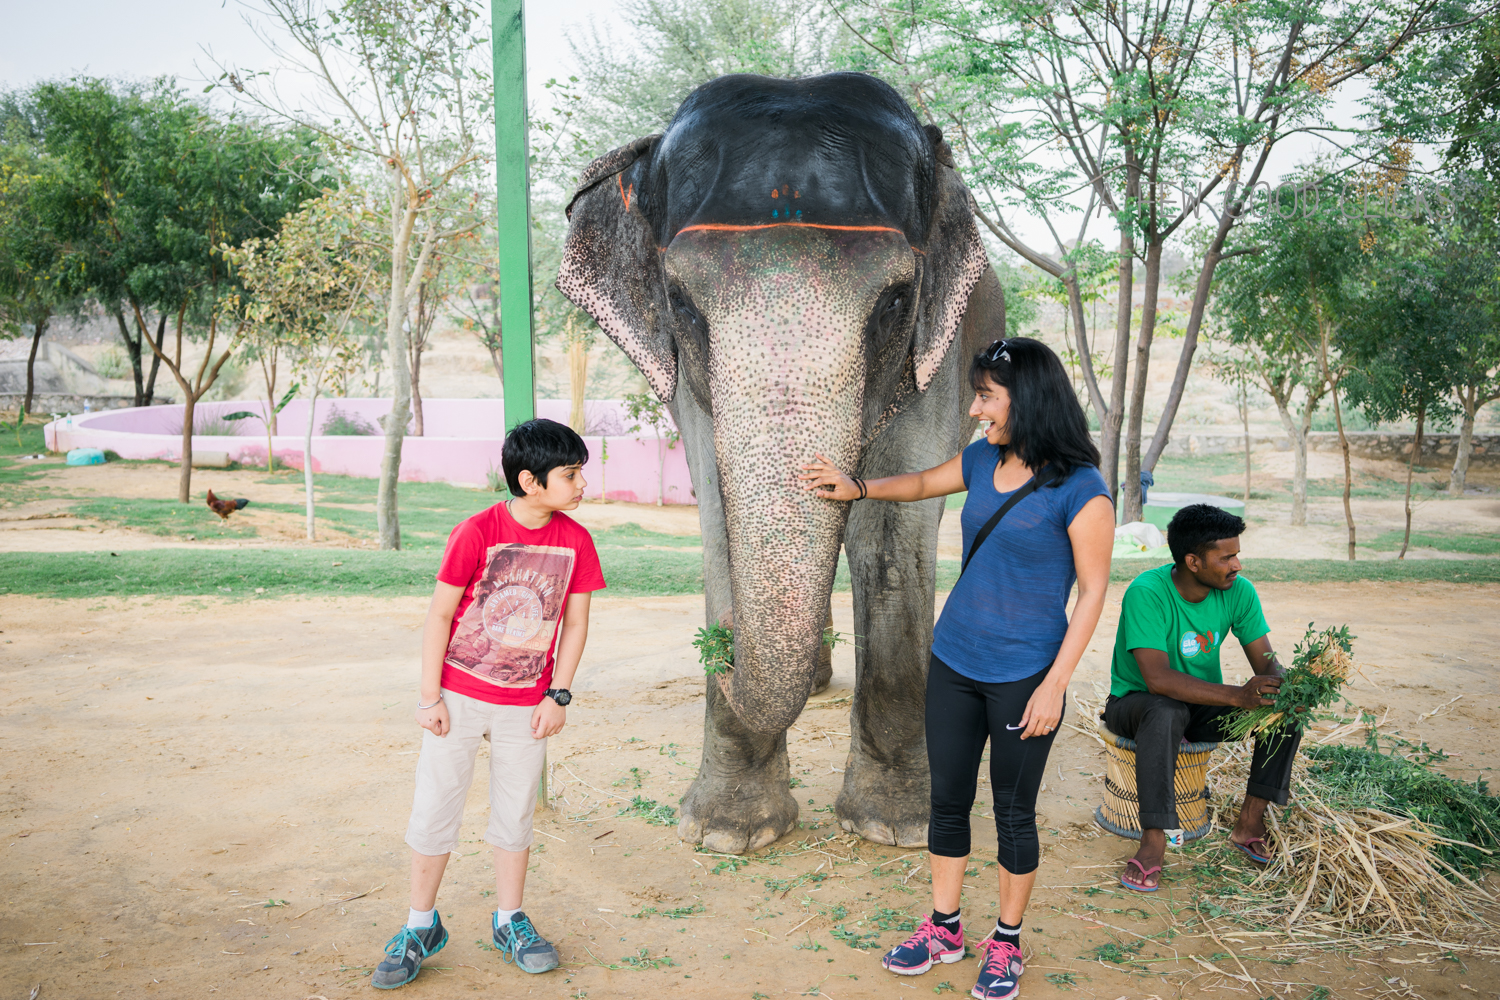 Confession time -  Even though I am a big fan of elephants, I was scared to be near our gigantic friend.